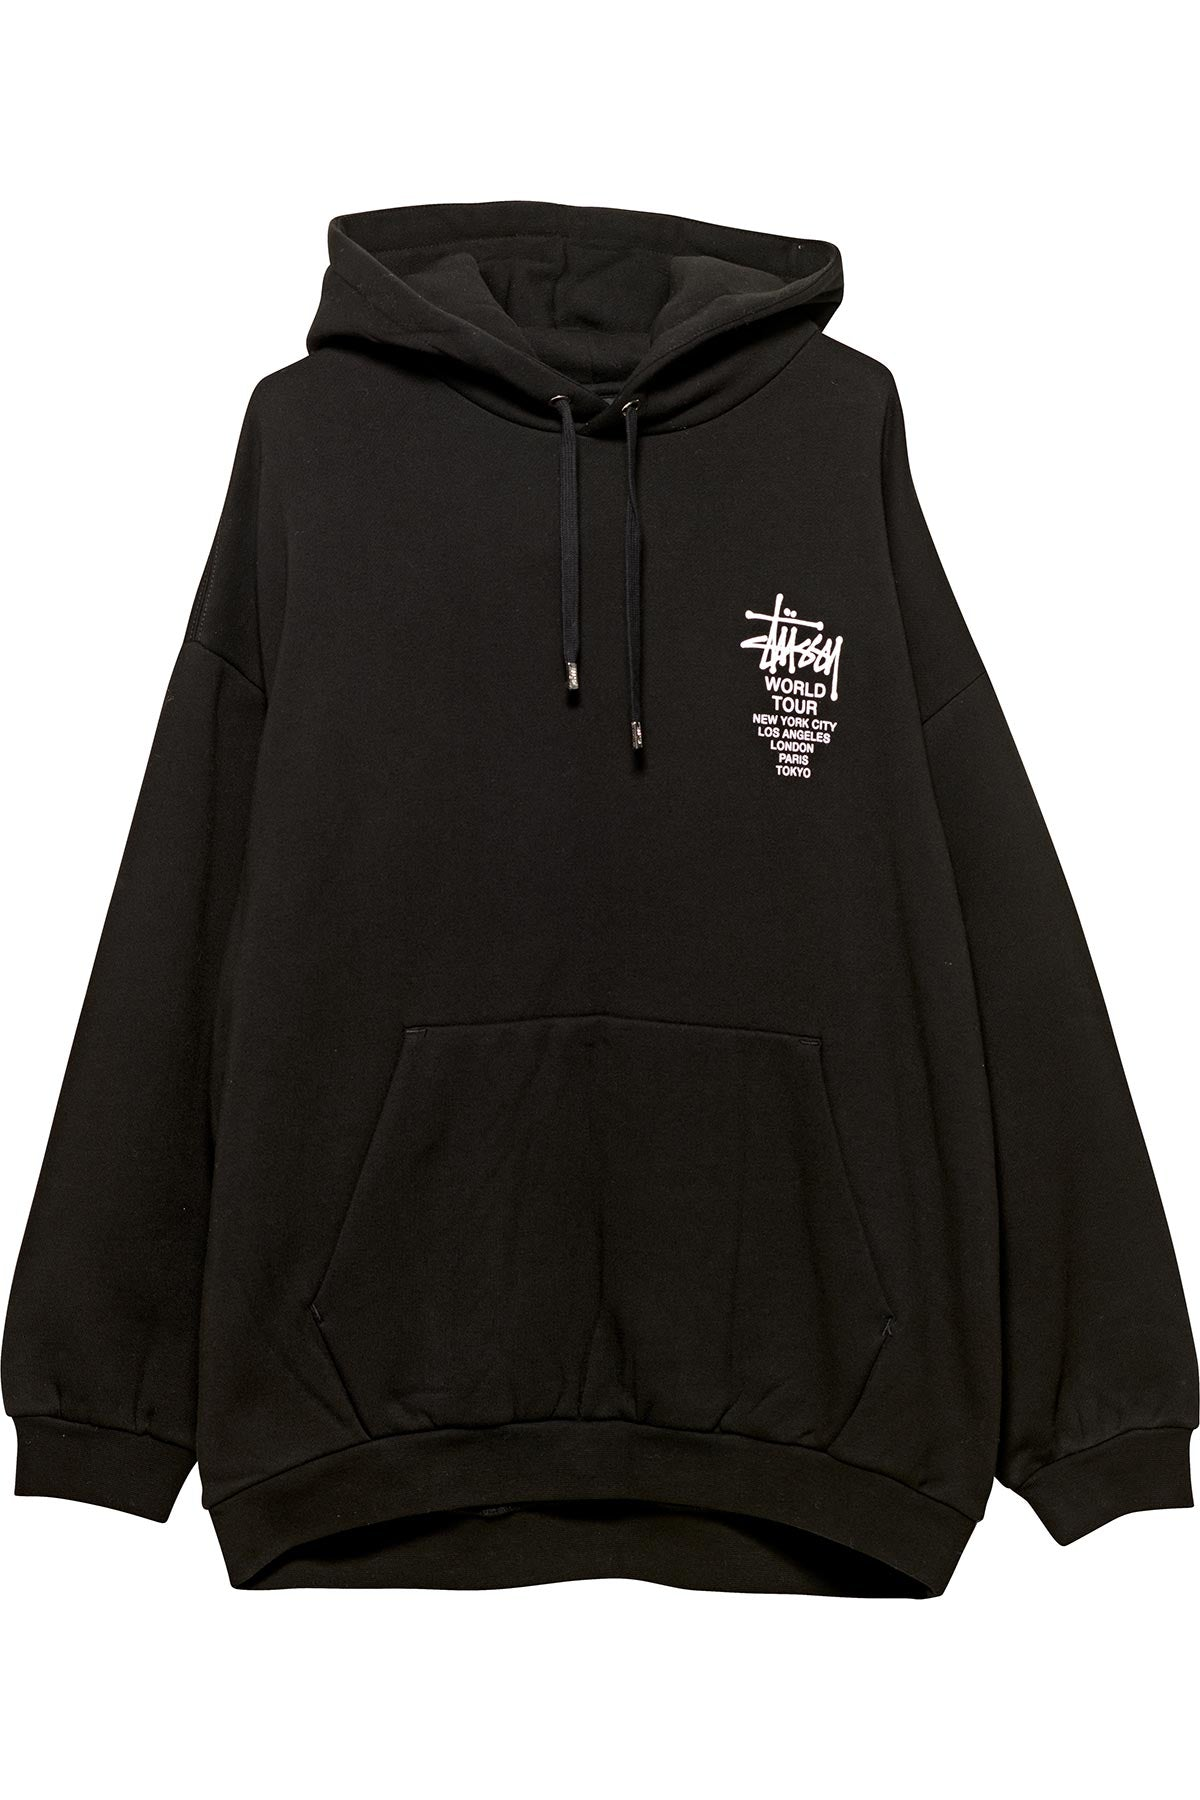 Cities Over-sized Hood - R8gzwear